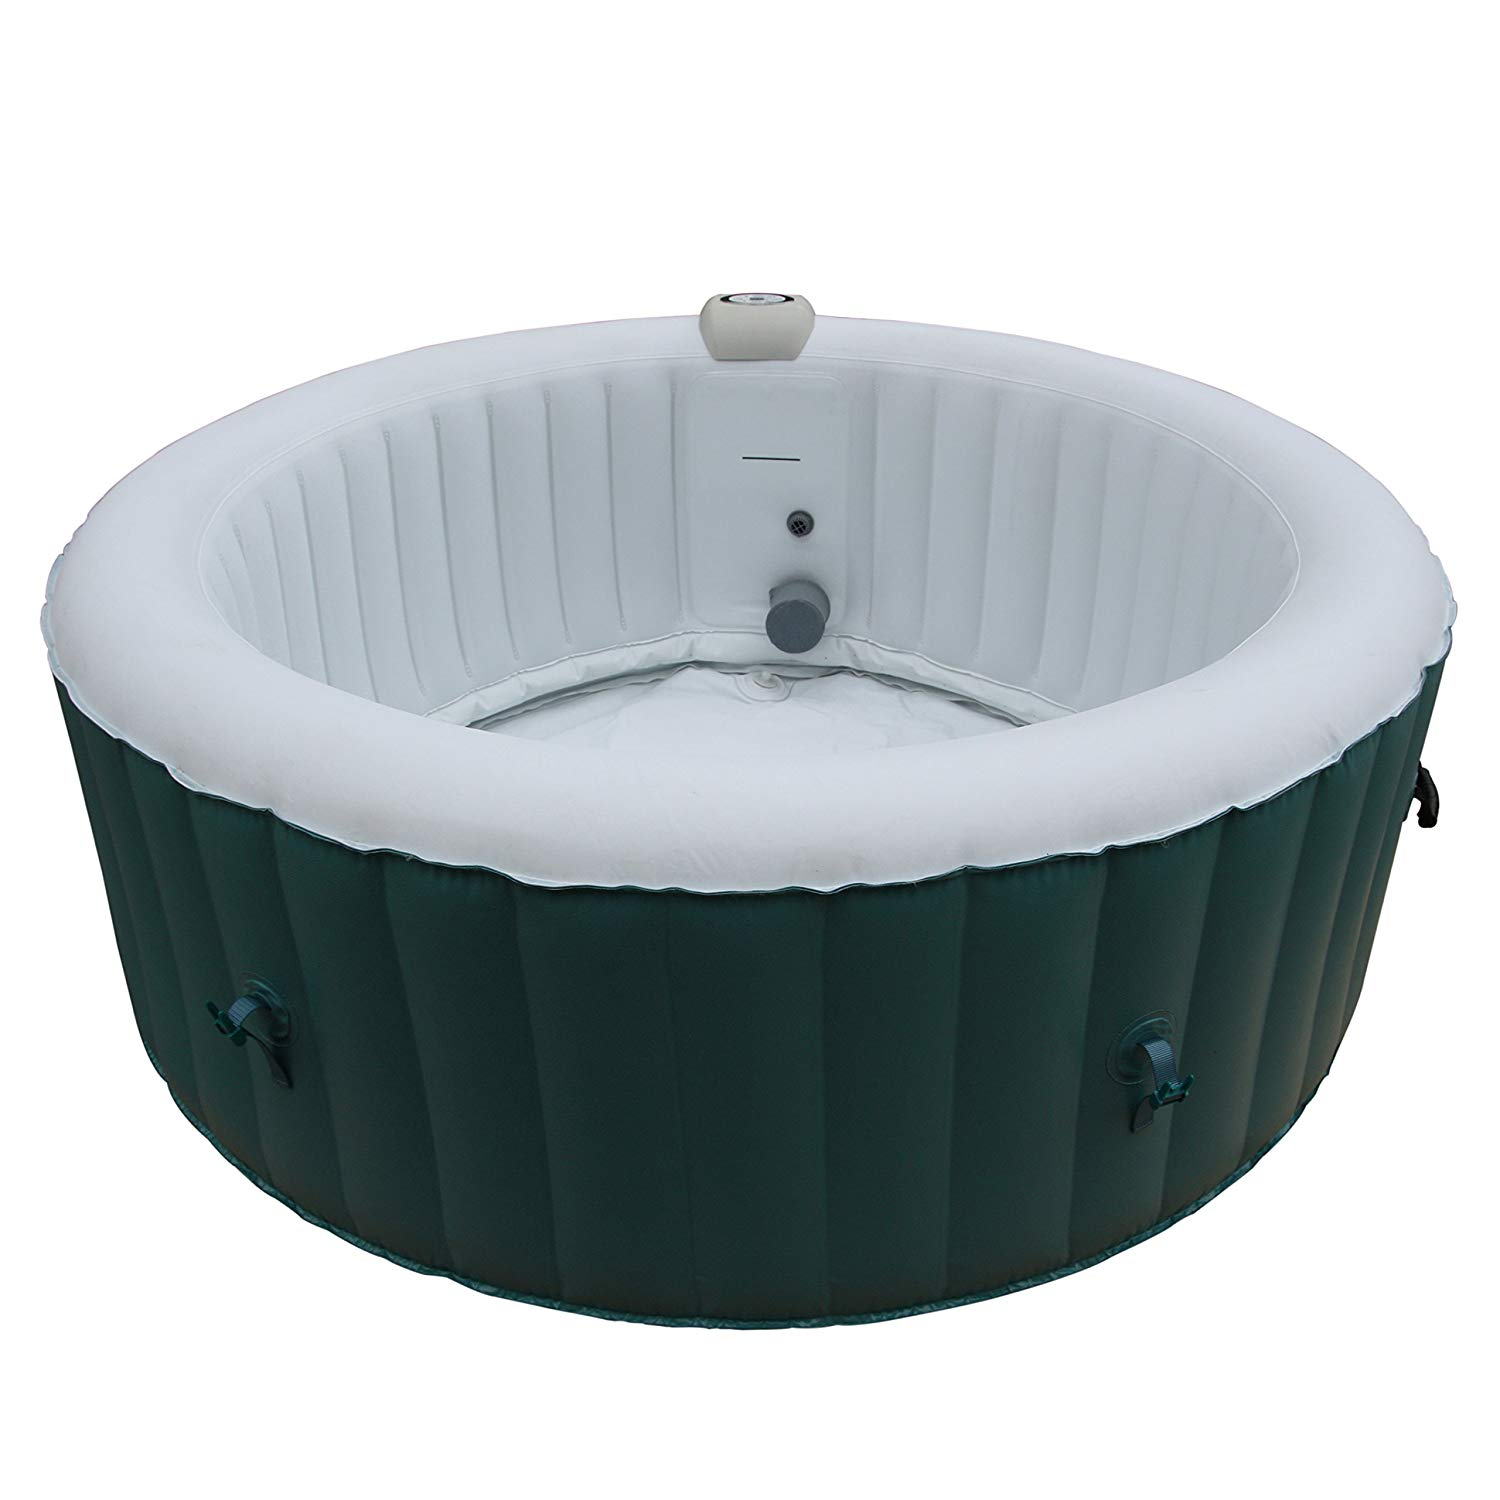 ALEKO Round Inflatable Hot Tubs